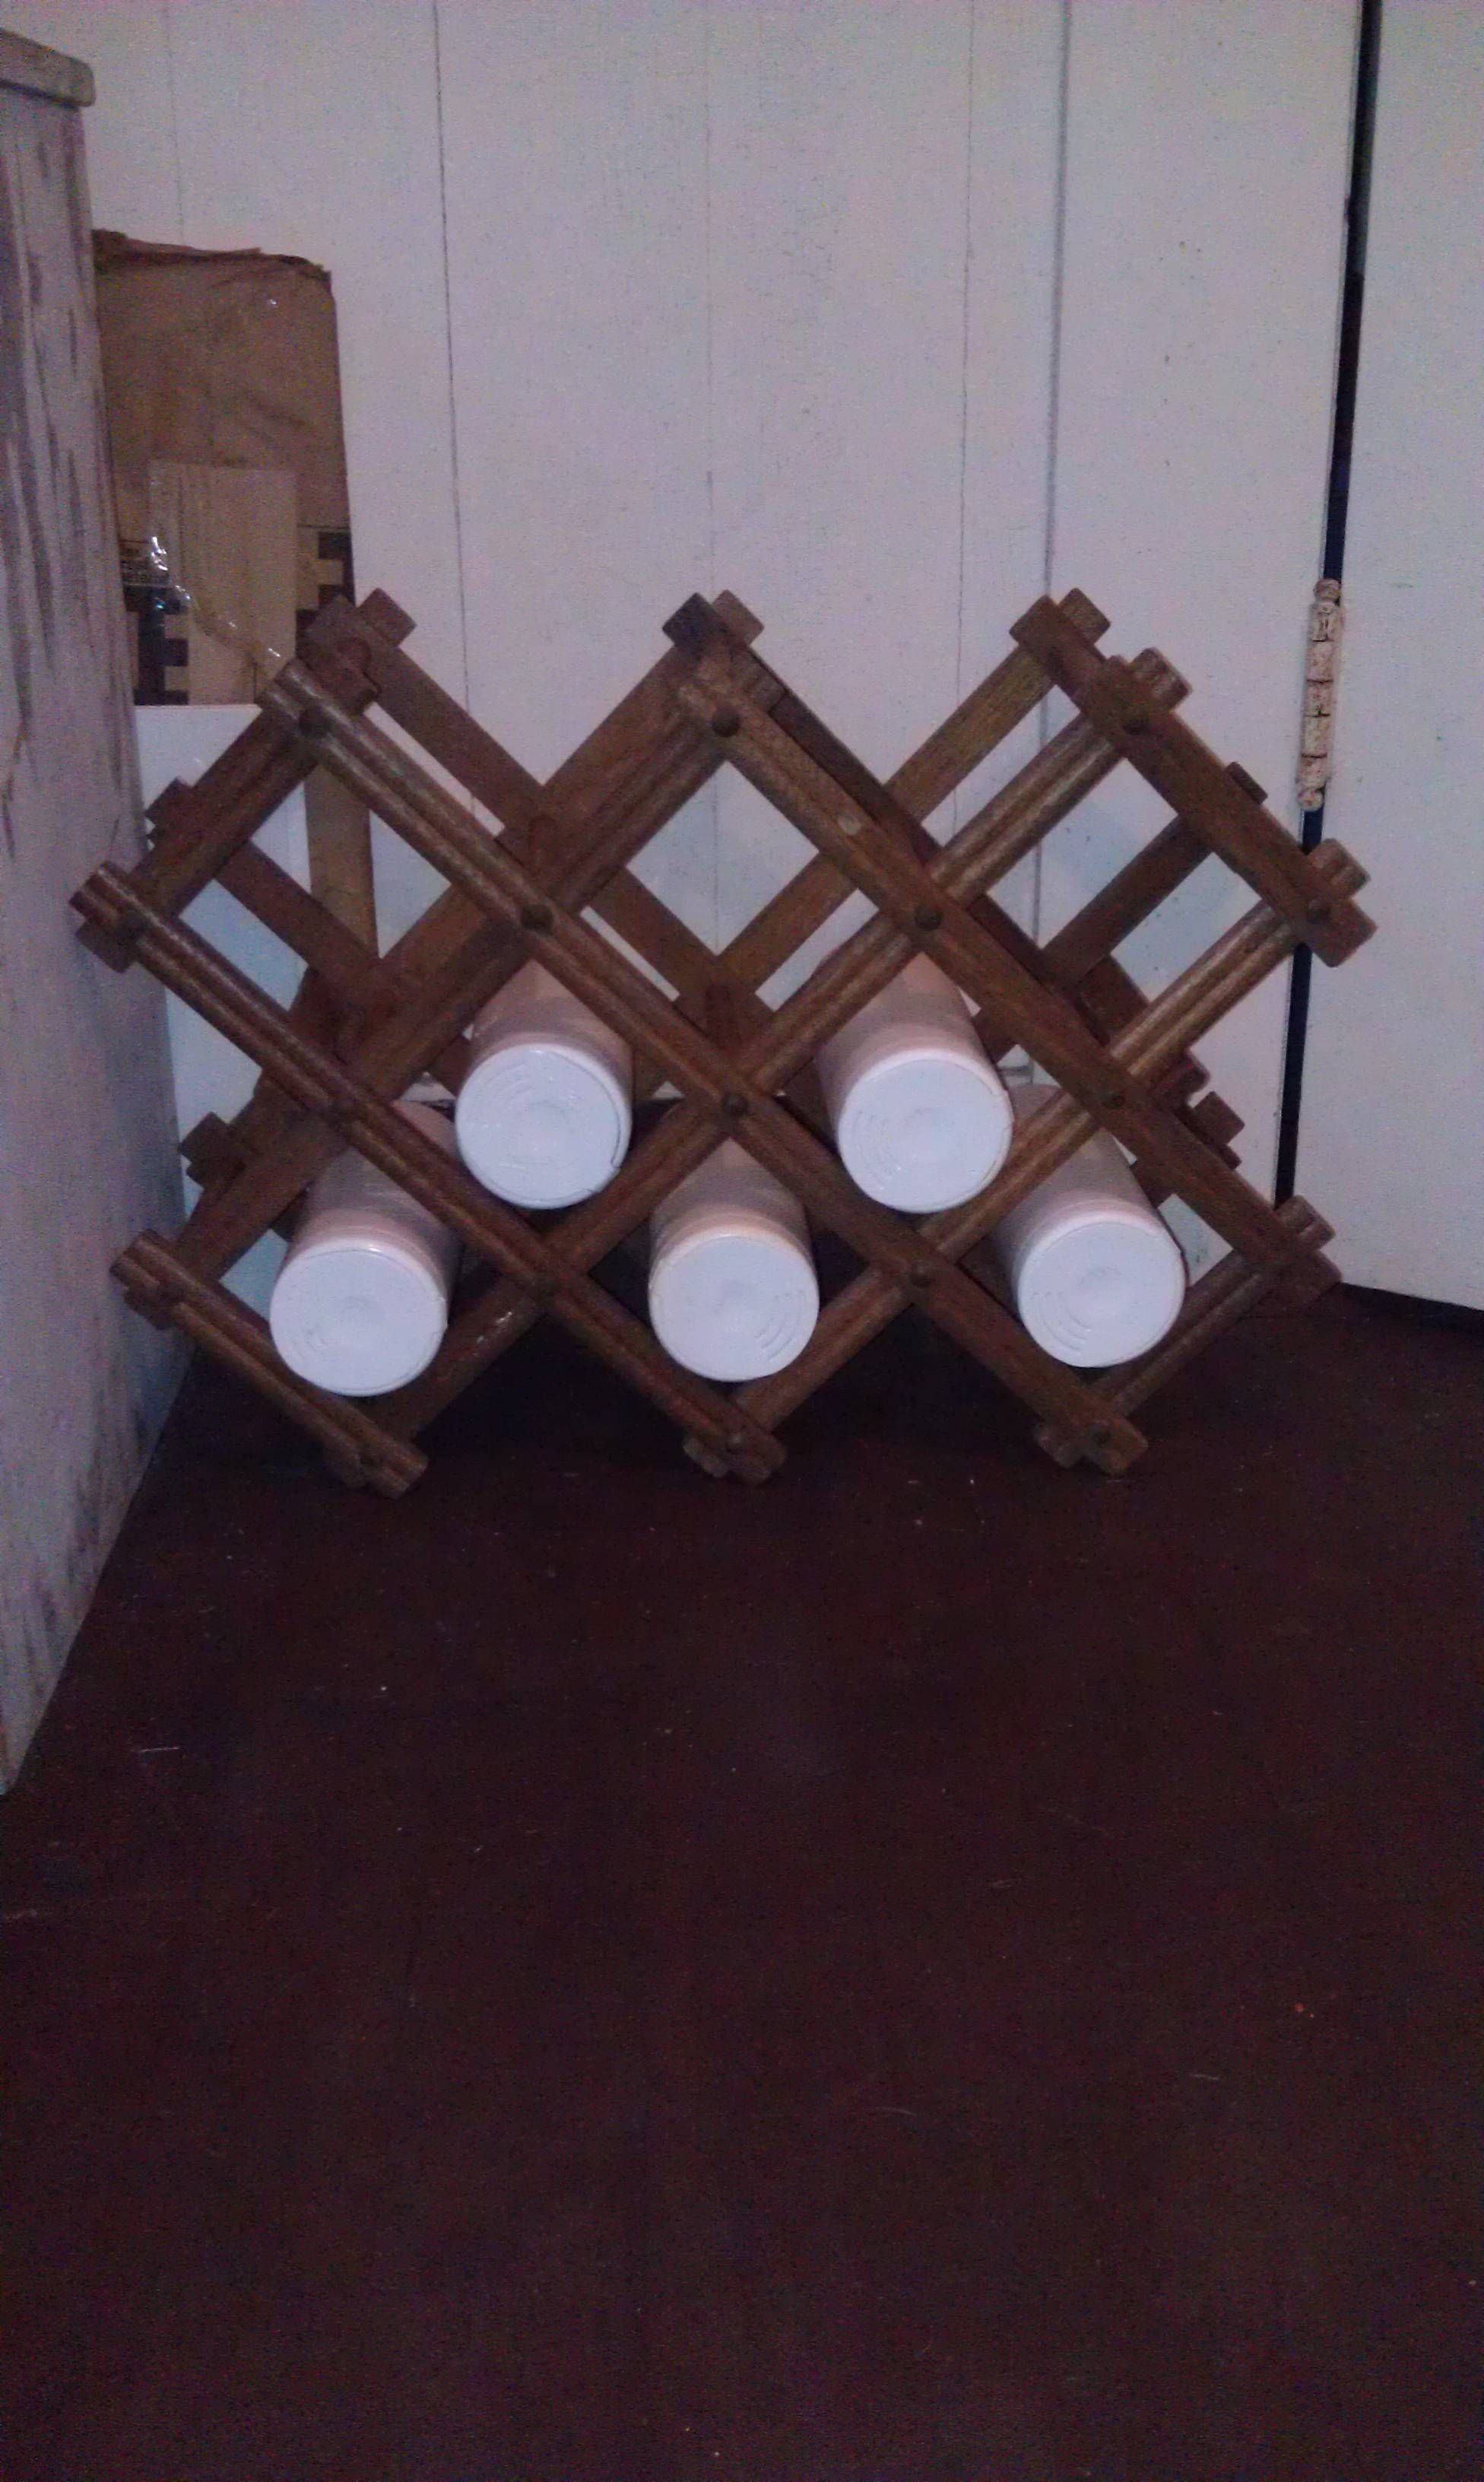 Other Uses For Wine Racks Upcycle Clorex Wipe Containers And Old Wine Rack For Fun